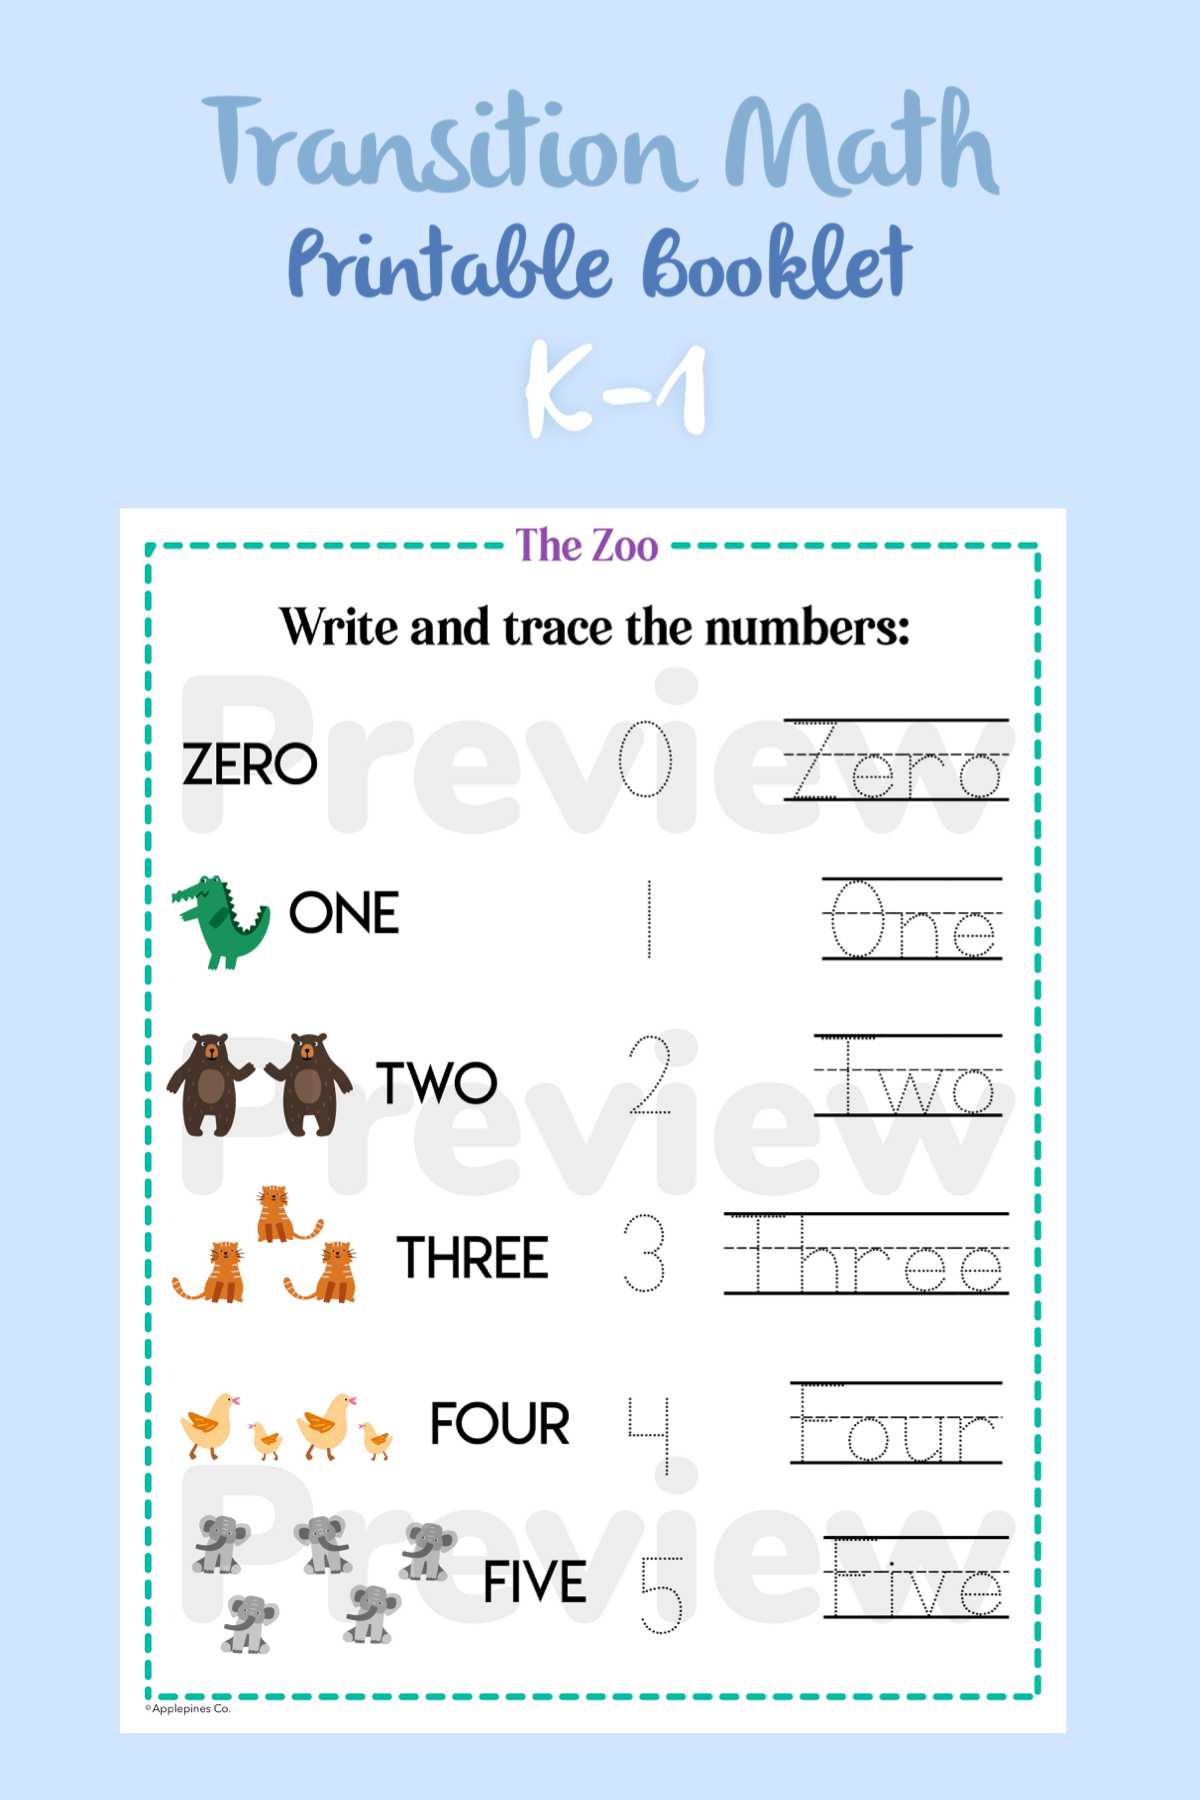 Do You Know The Zoo Transition Math Worksheets Printable Booklet Math Math Printables Printable Certificates [ 1800 x 1200 Pixel ]